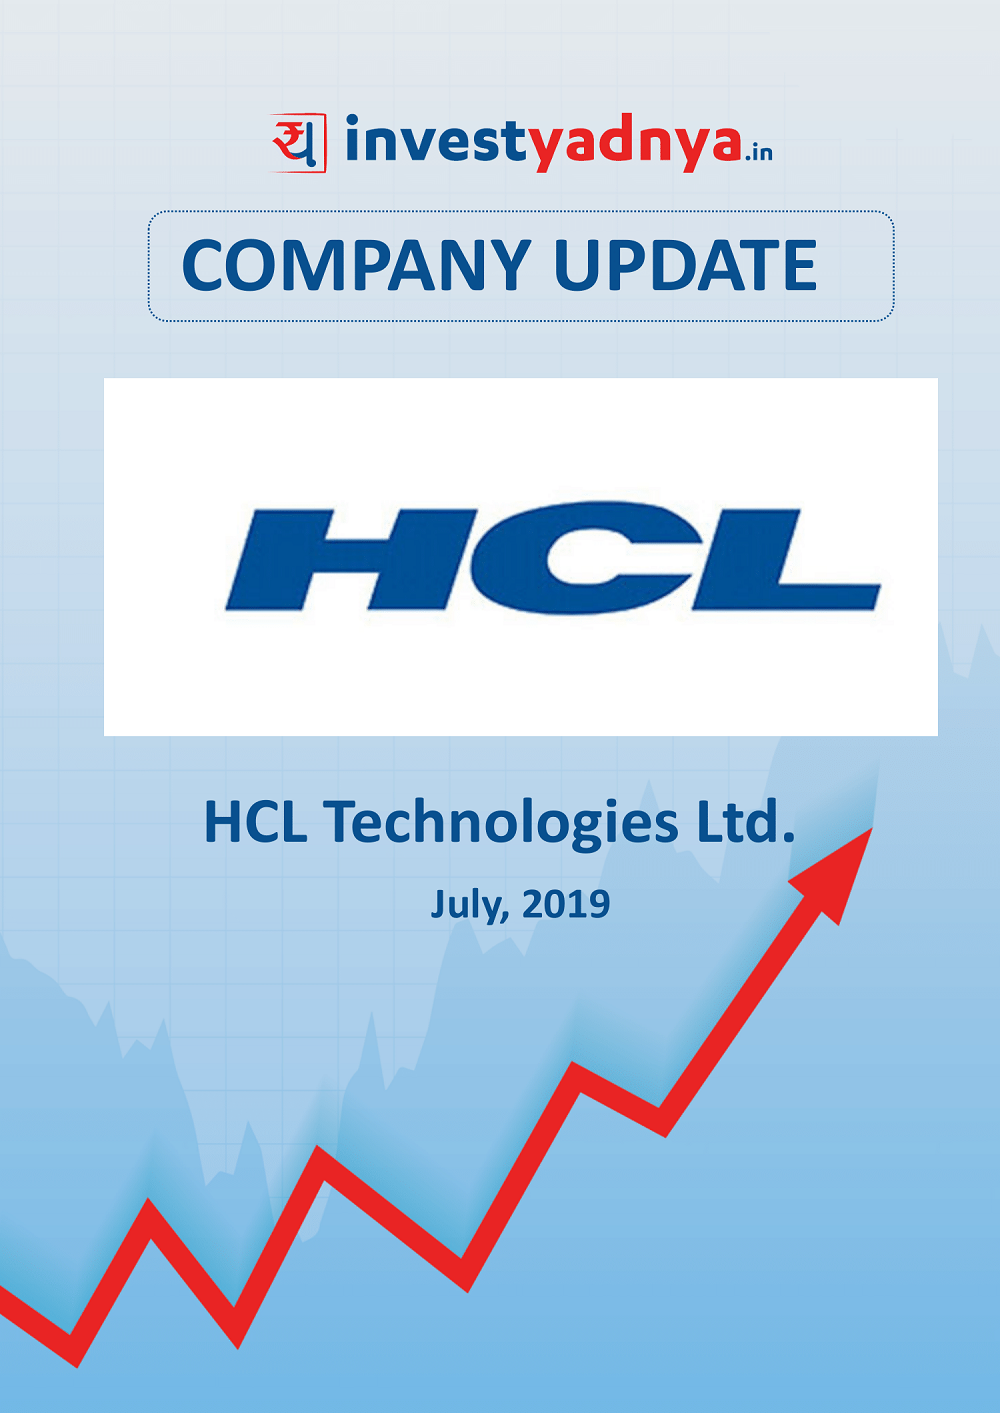 This e-book offers a detailed report on HCL Technologies Ltd. considering both qualitative and financial perspectives. It reviews the company's Q4 results. ✔ Detailed Research ✔ Quality Reports